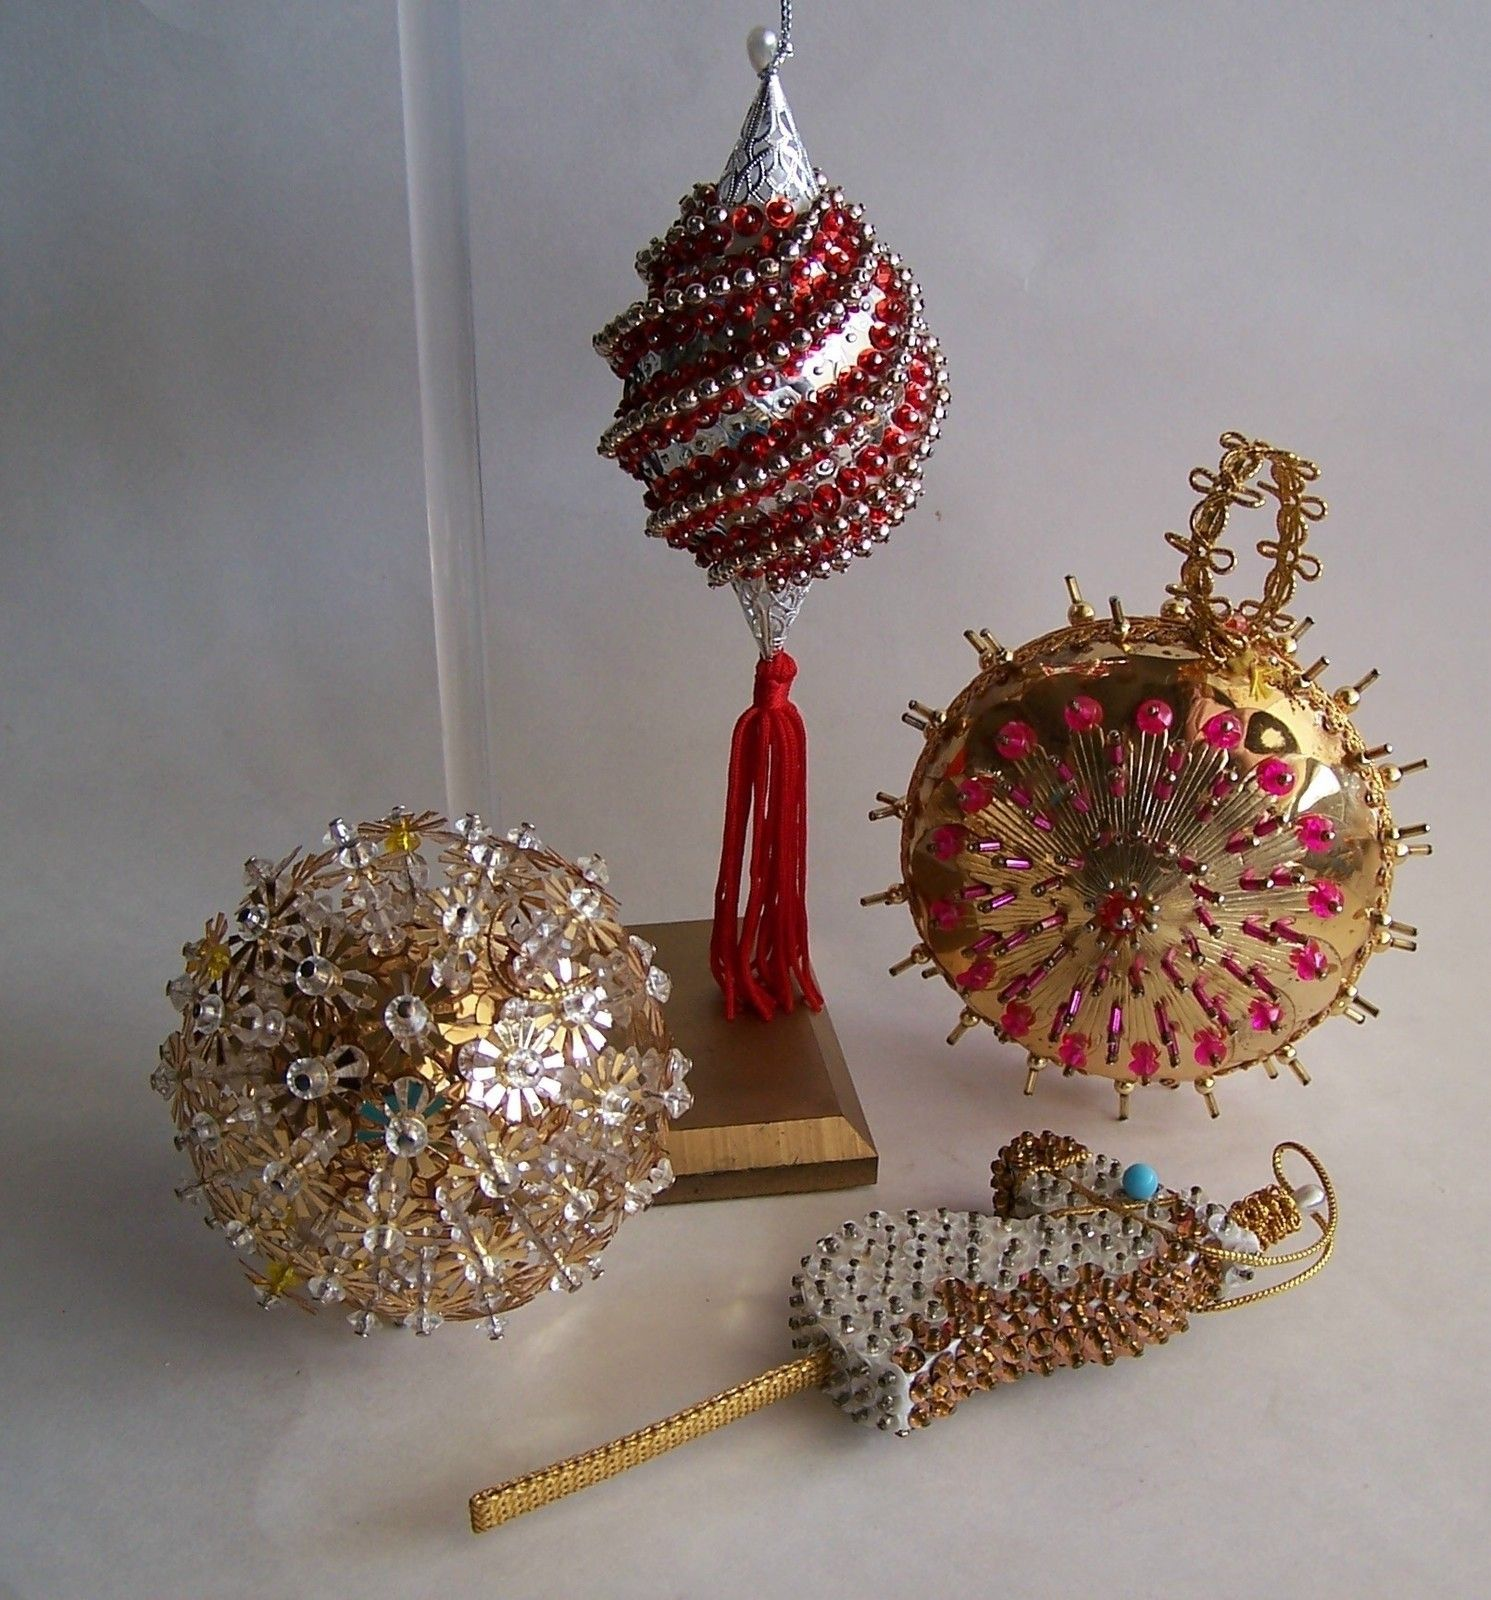 I Love These Ornaments From The Early 70S Kids Sometimes